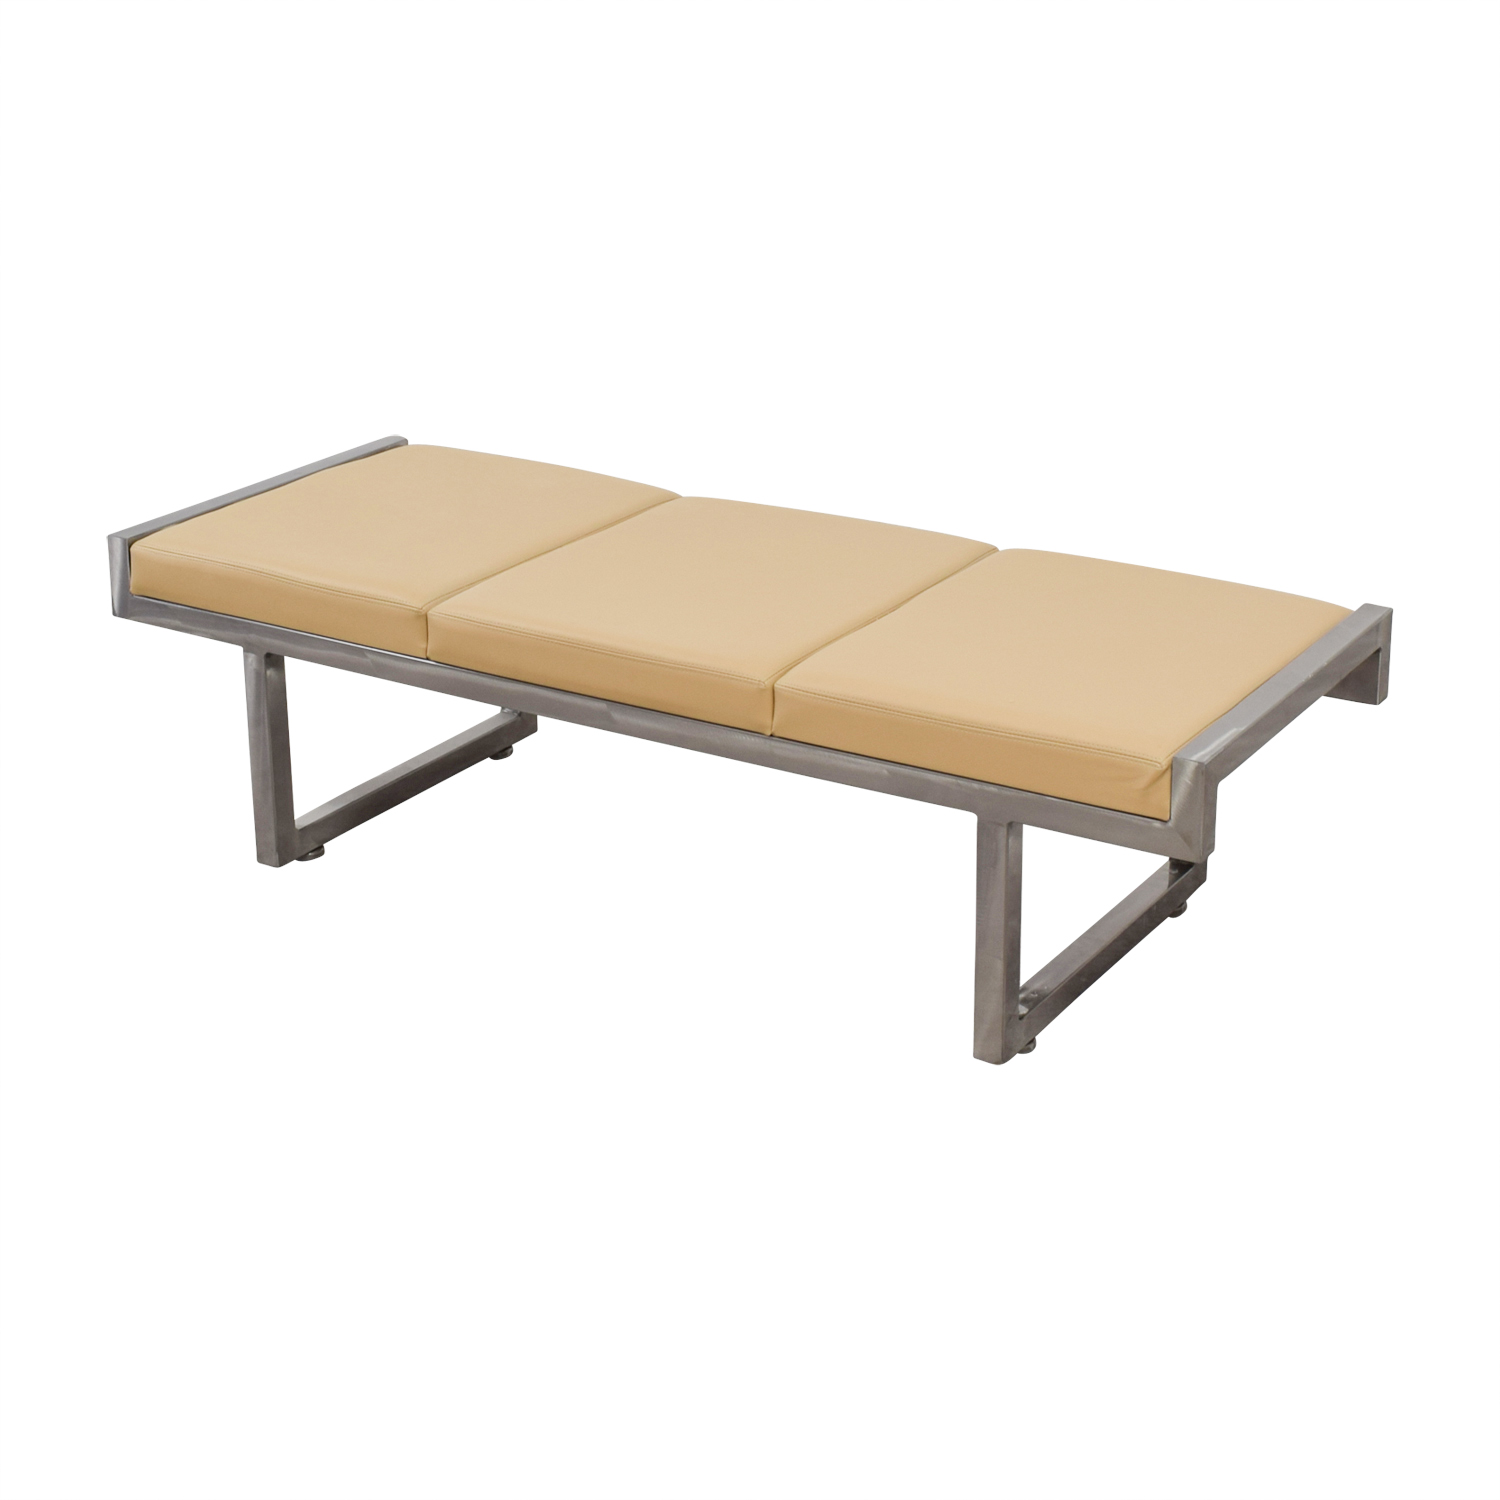 ... Johnston Casuals Furniture Johnston Casuals Furniture Symphony Buff  Bench Silver, Beige ...